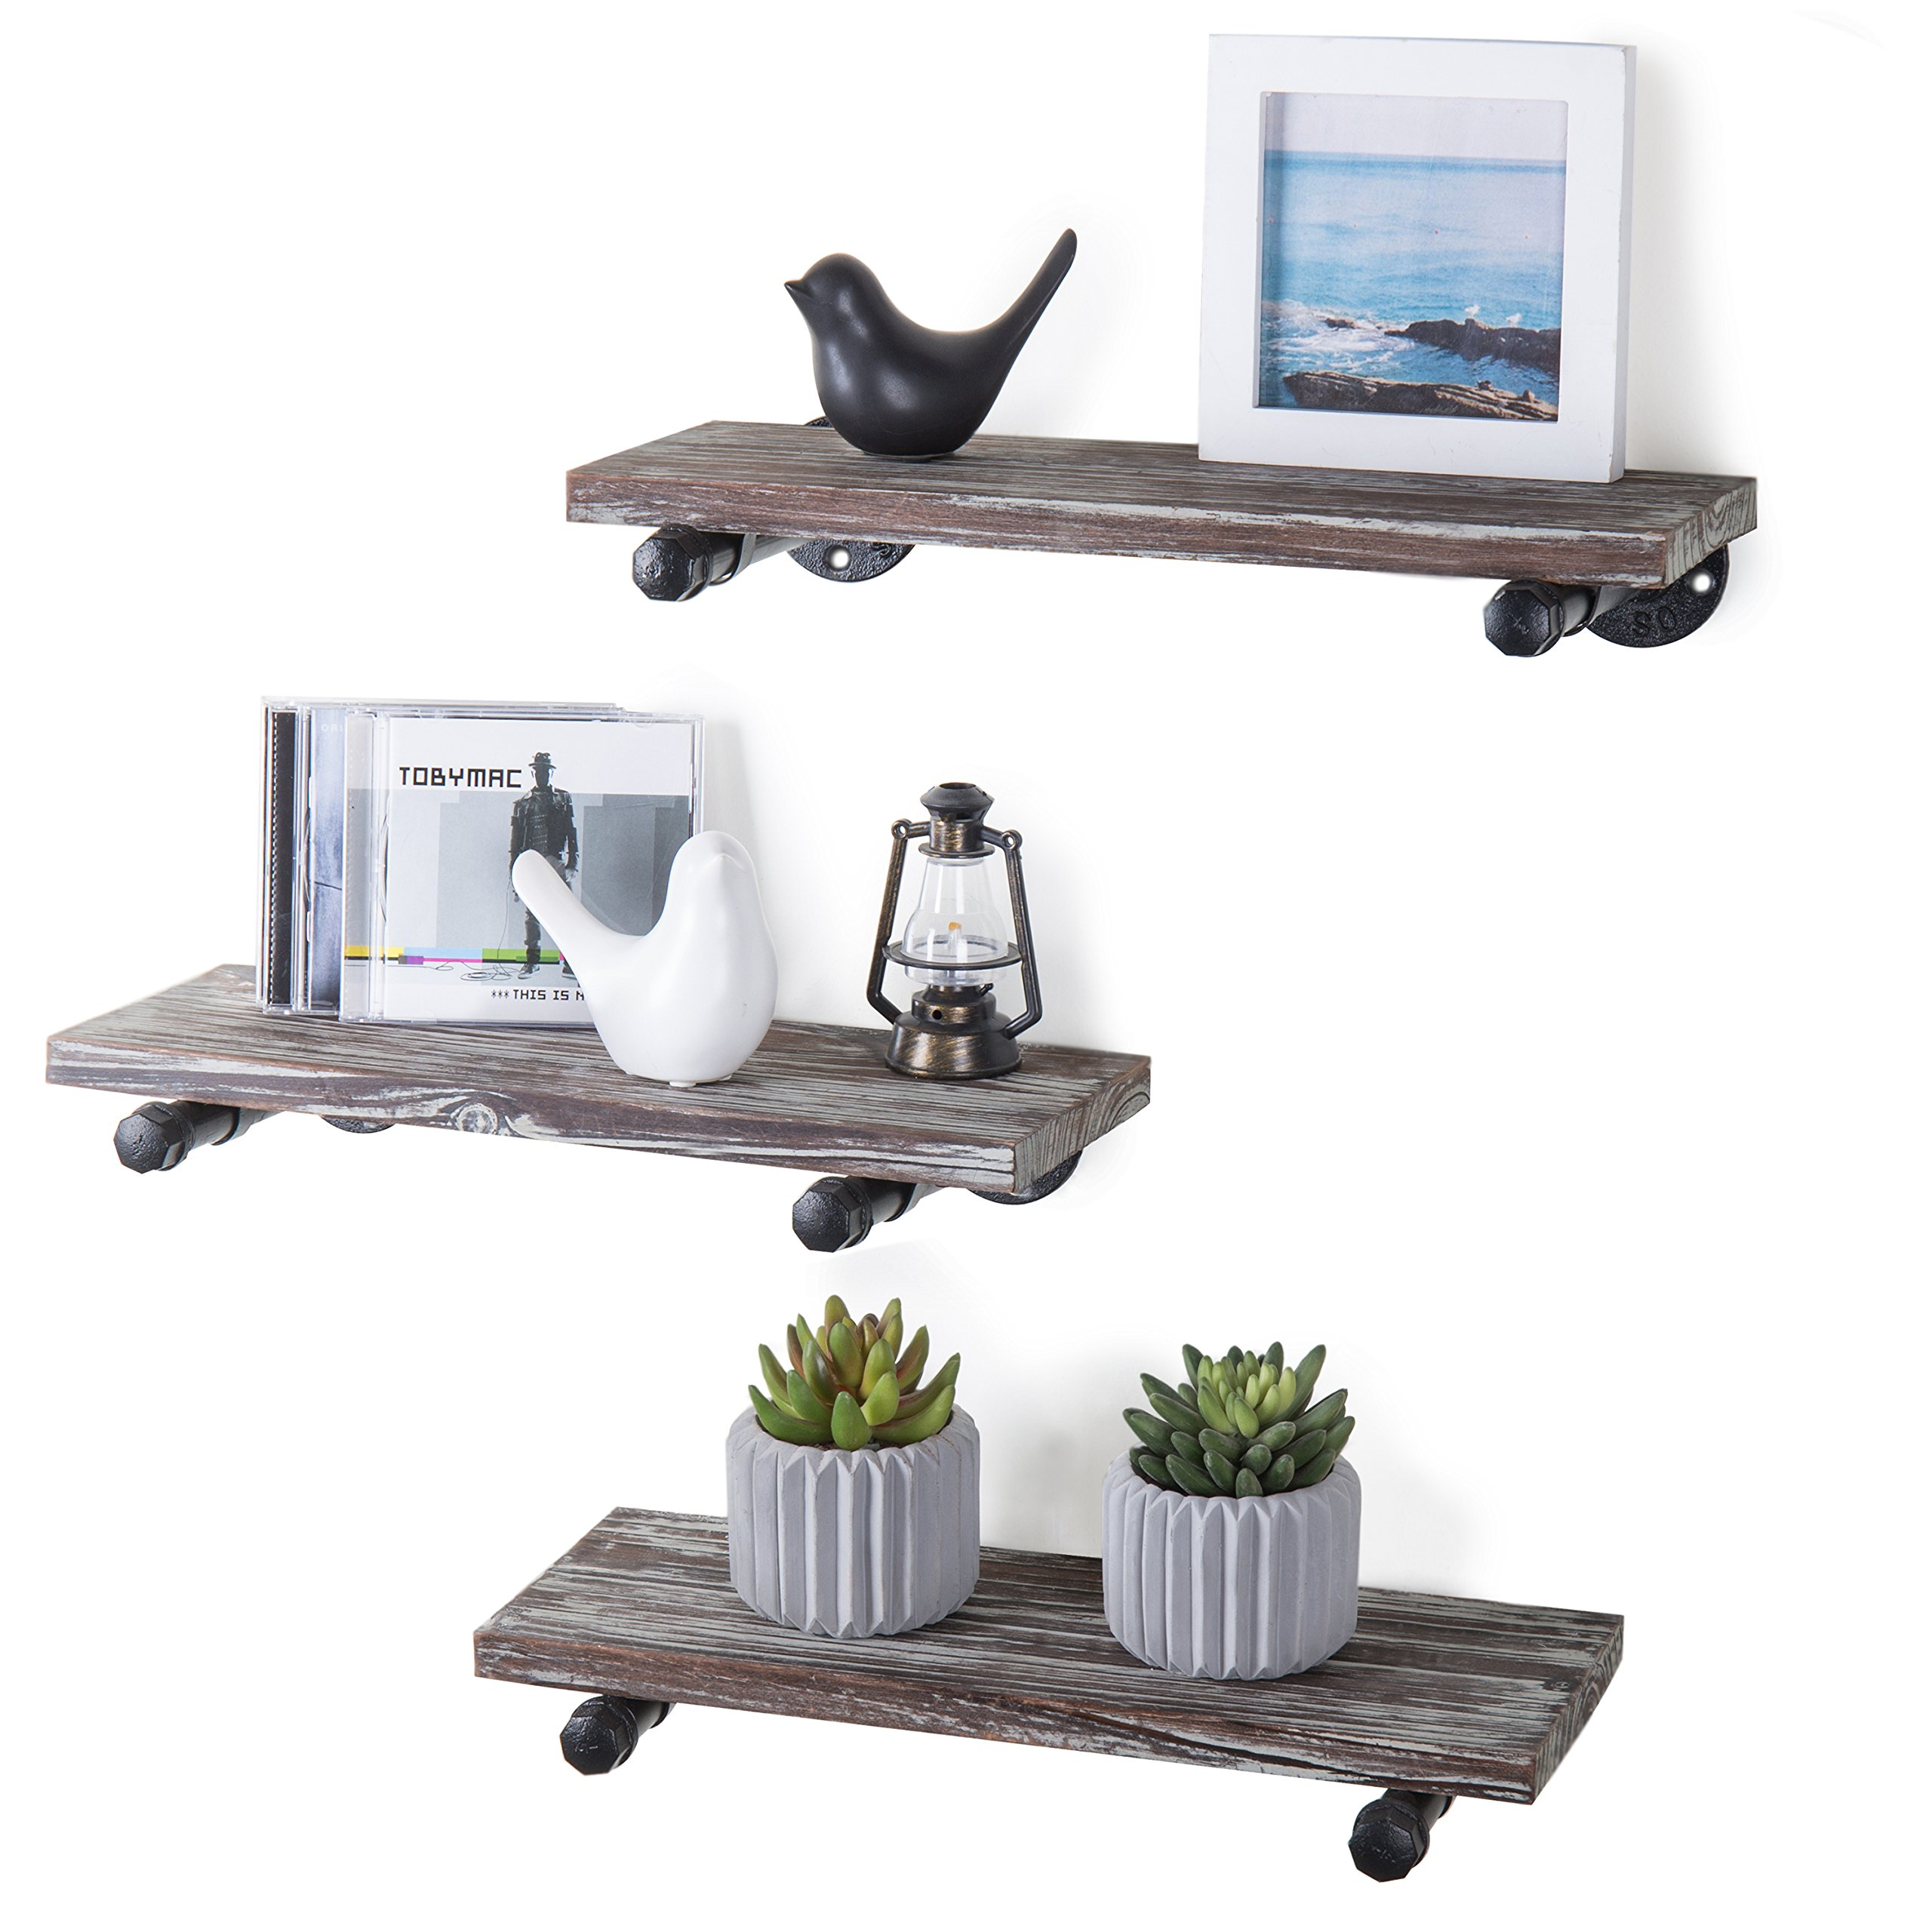 MyGift Urban Rustic Wall-Mounted Torched Wood Floating Shelves, Set of 3 by MyGift